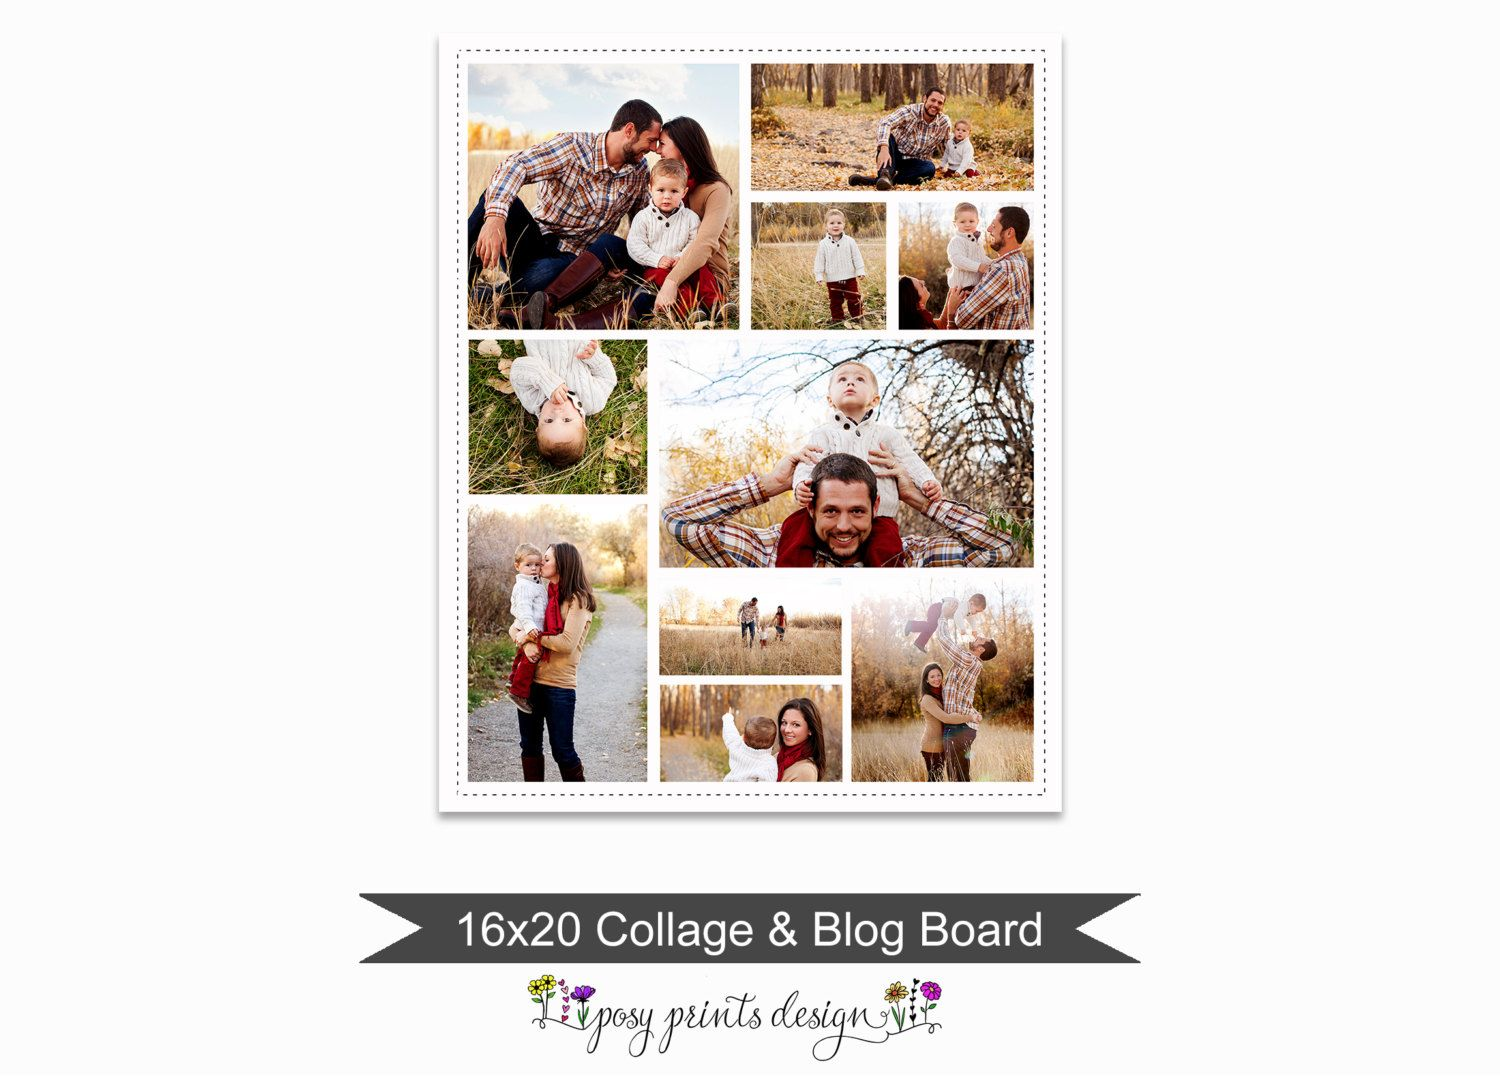 Blog Board Collage Template 16x20 Social By Posyprintsdesign